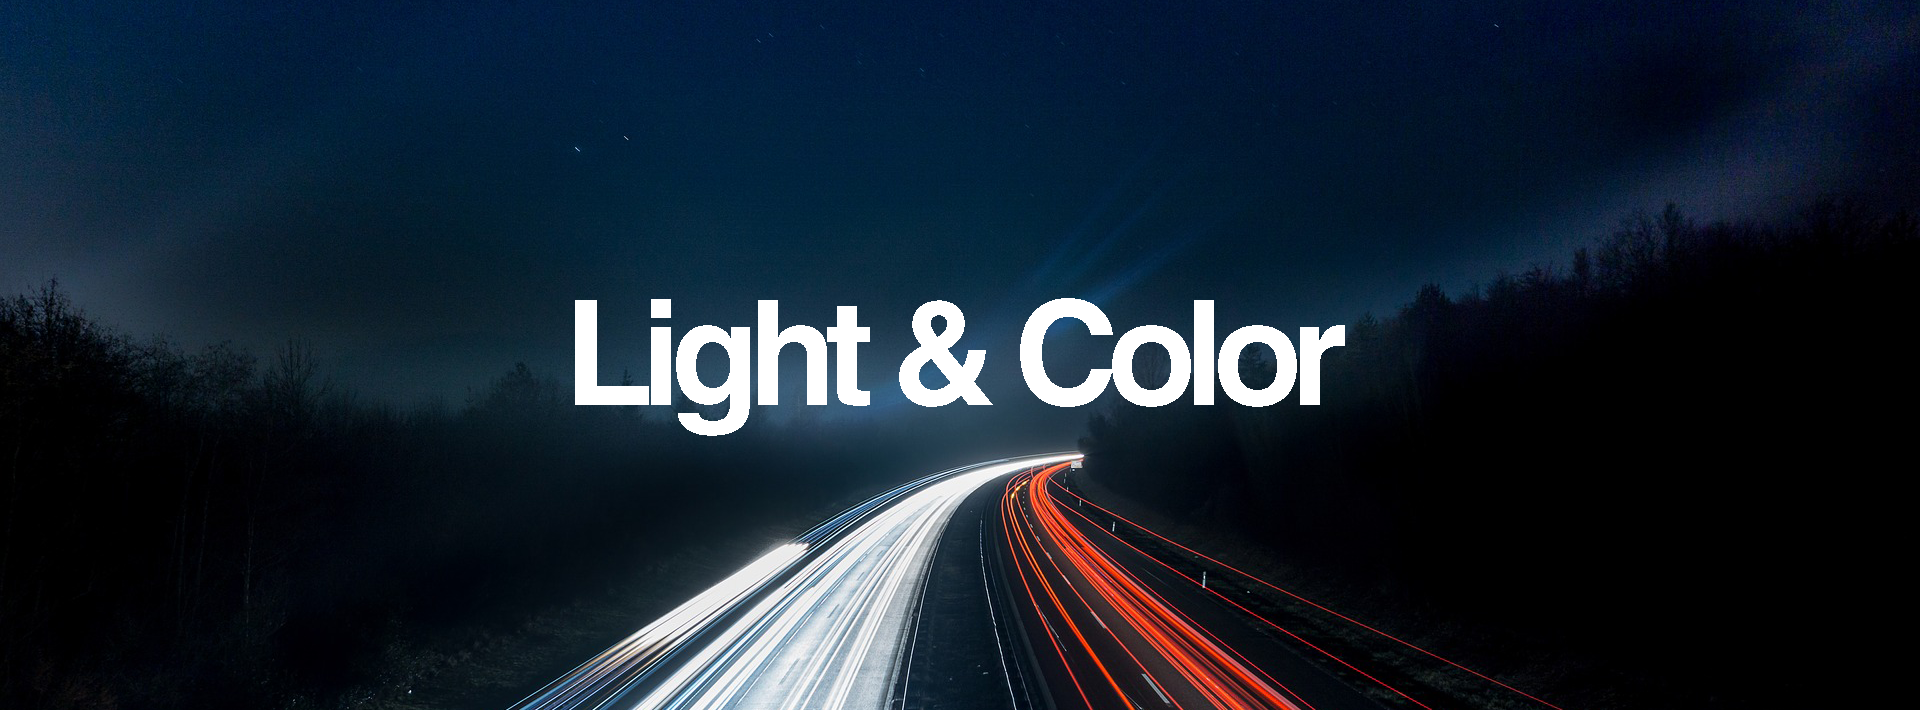 light and color banner.png